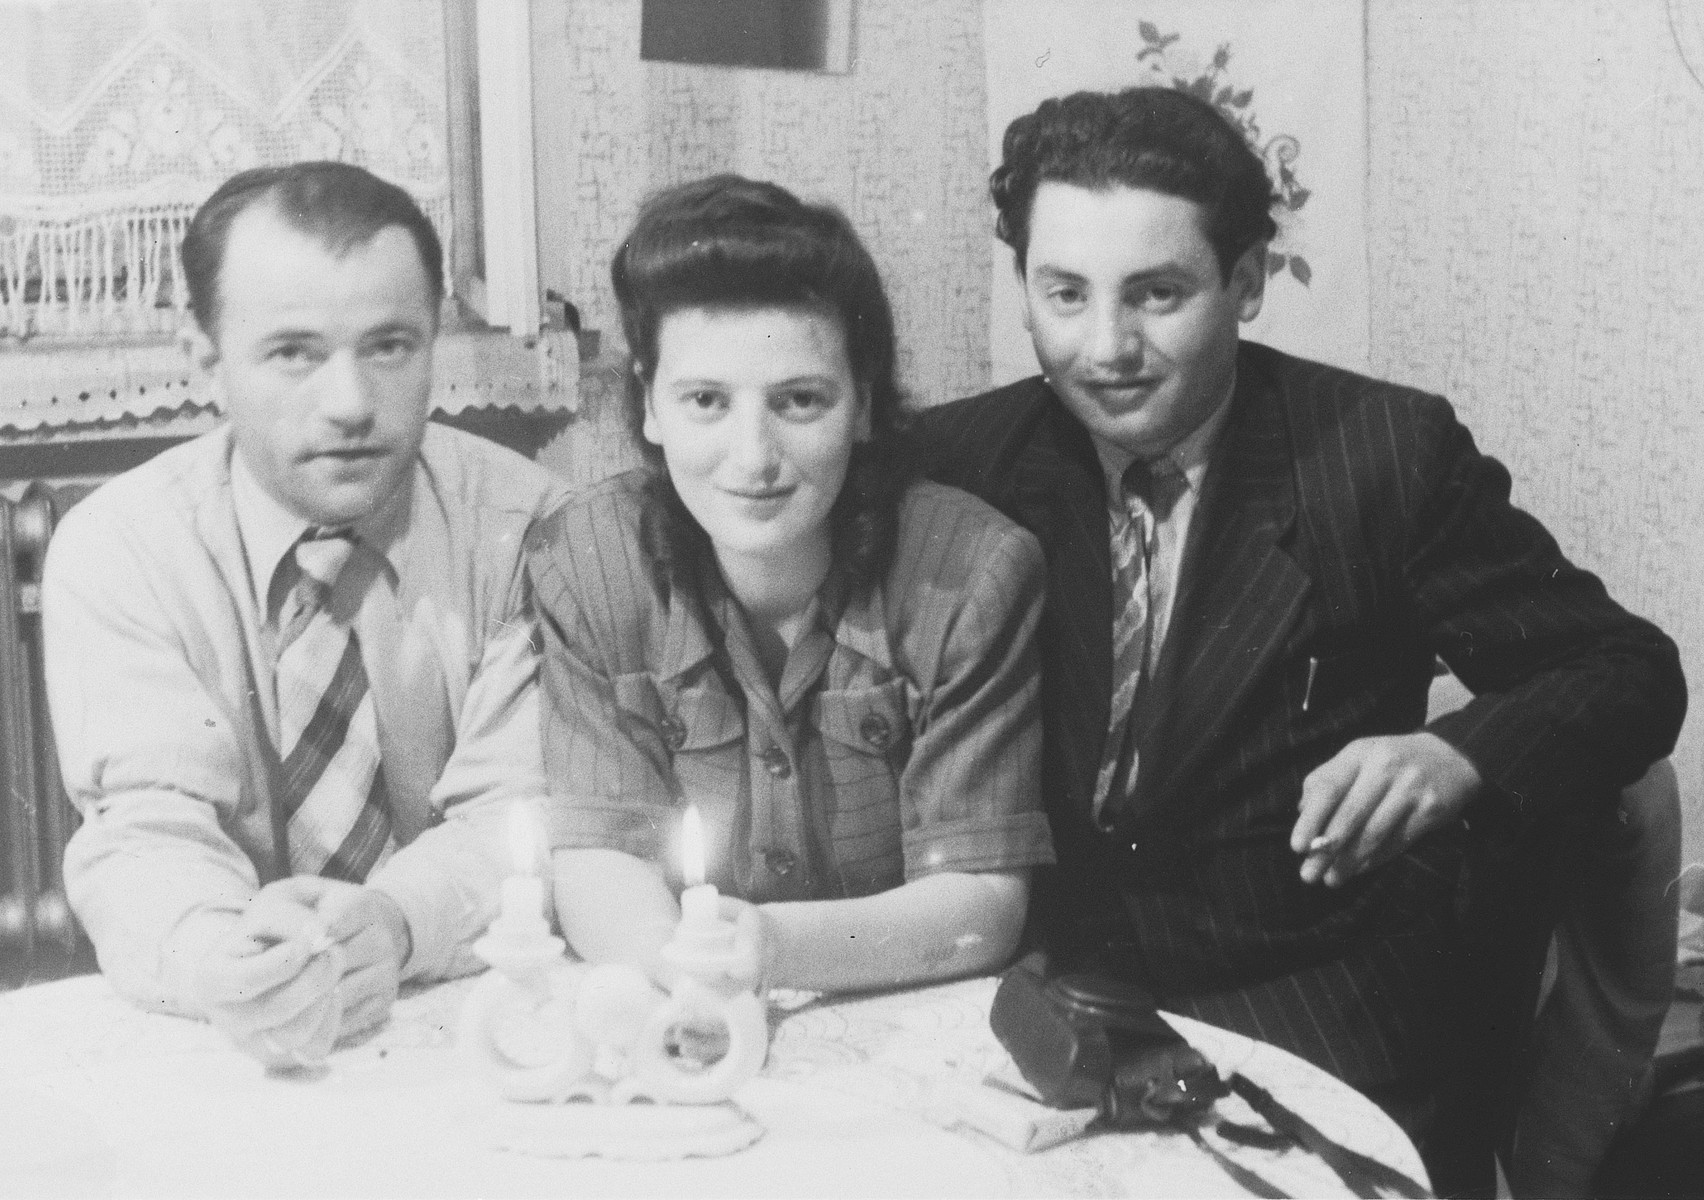 Three young Hungarian Jewish displaced persons sit around a table with lit candles.  Among those pictured is the donor, Sandor Berko, seated on the right.